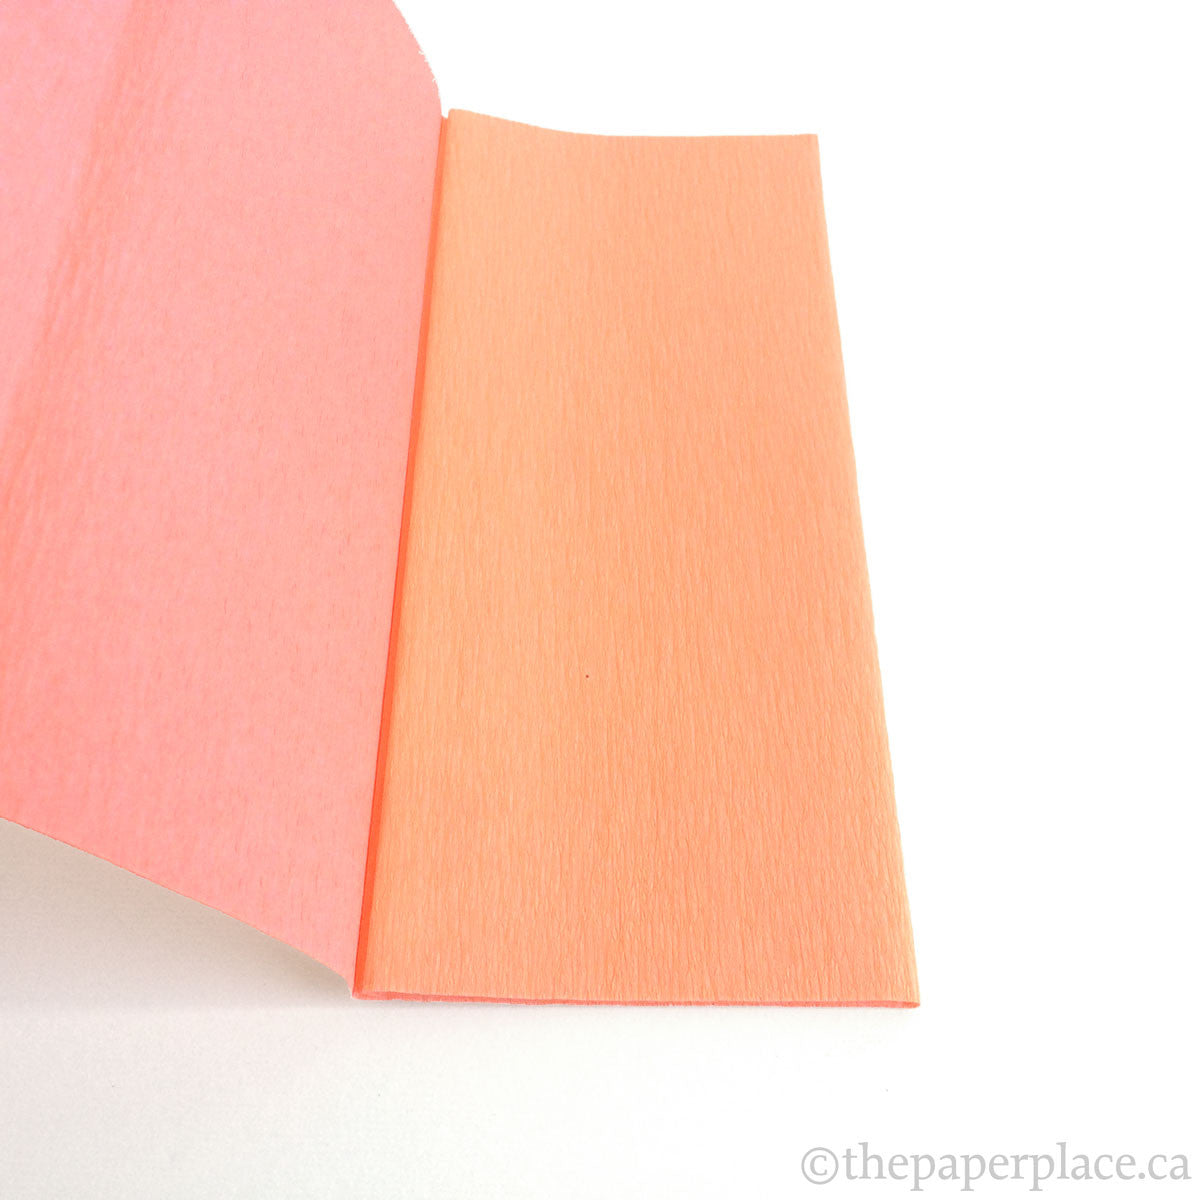 90g Double-Sided Crepe - Salmon/Peach